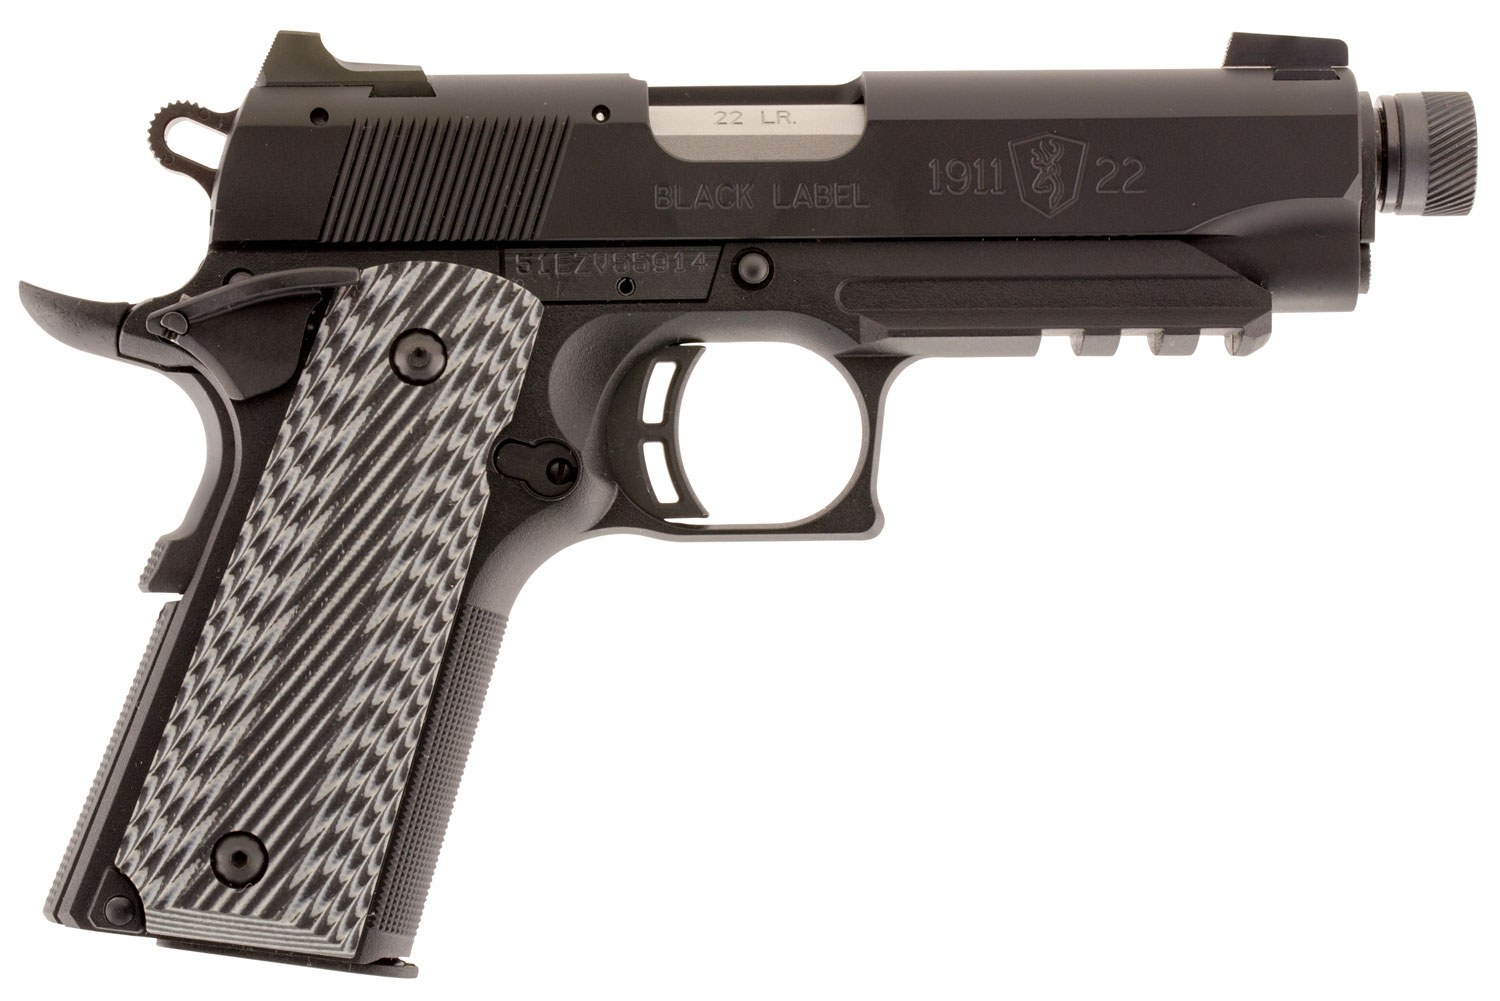 Browning 051821490 1911-22 Black Label Compact SR with Rail 22 LR 4.25